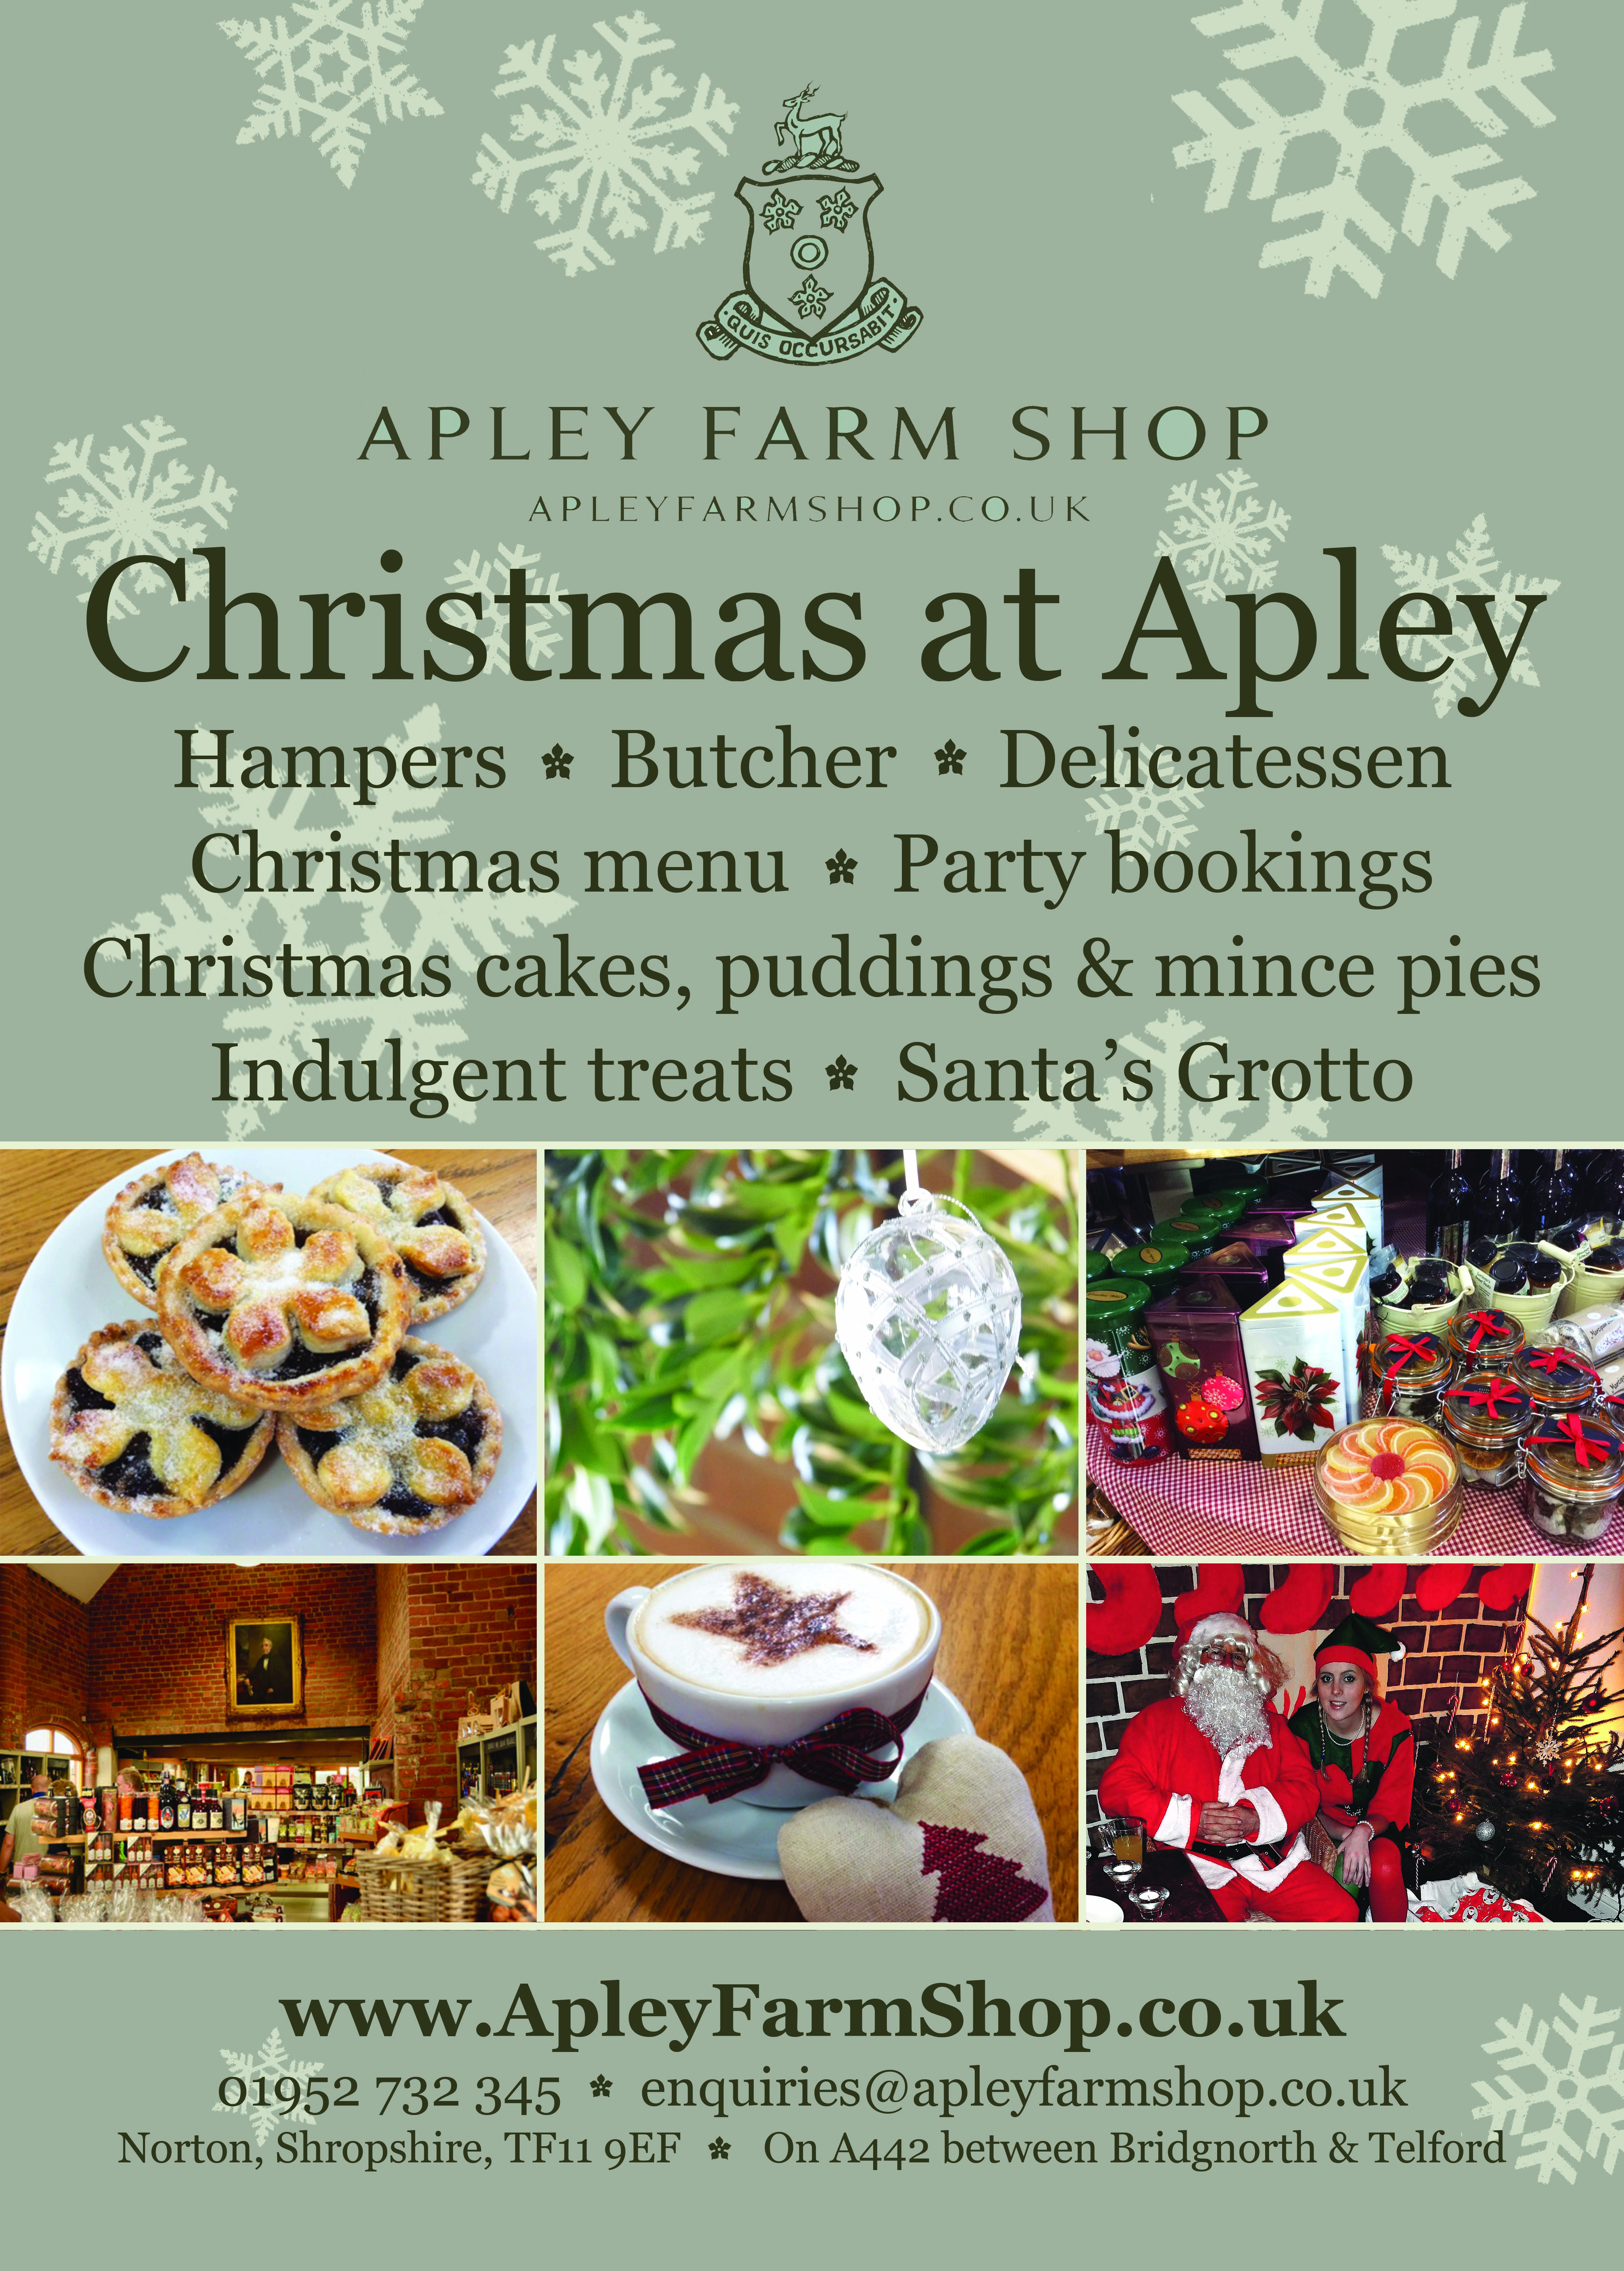 Open For Christmas Orders.Christmas Orders Open At Apley Farm Shop Lady Harriet Hamilton